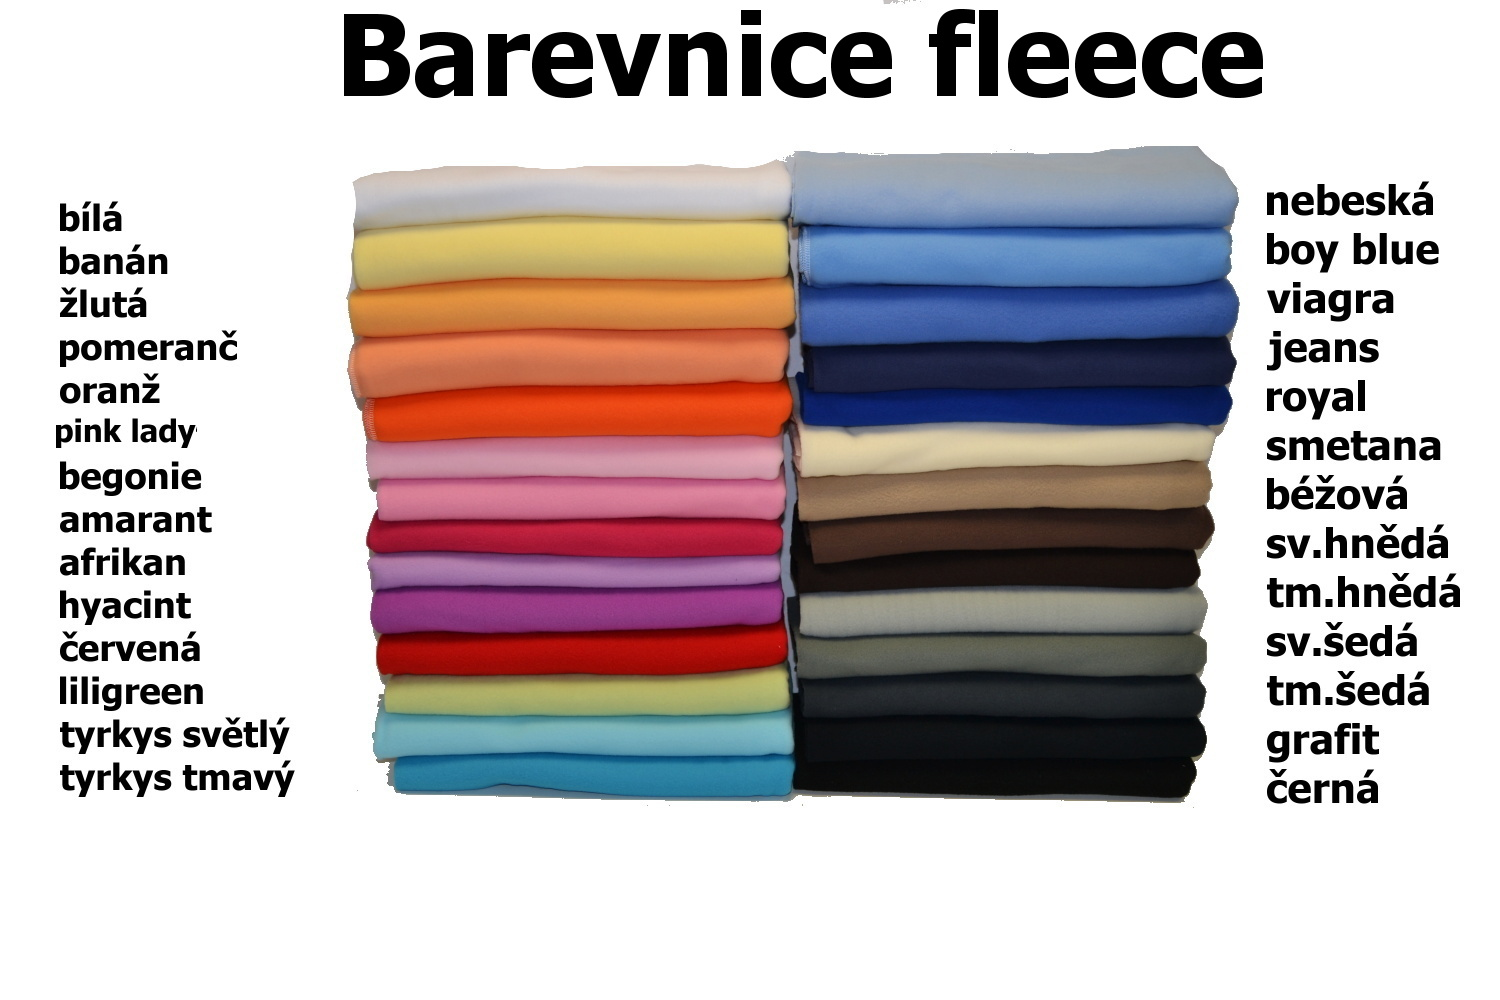 Barevnice fleece